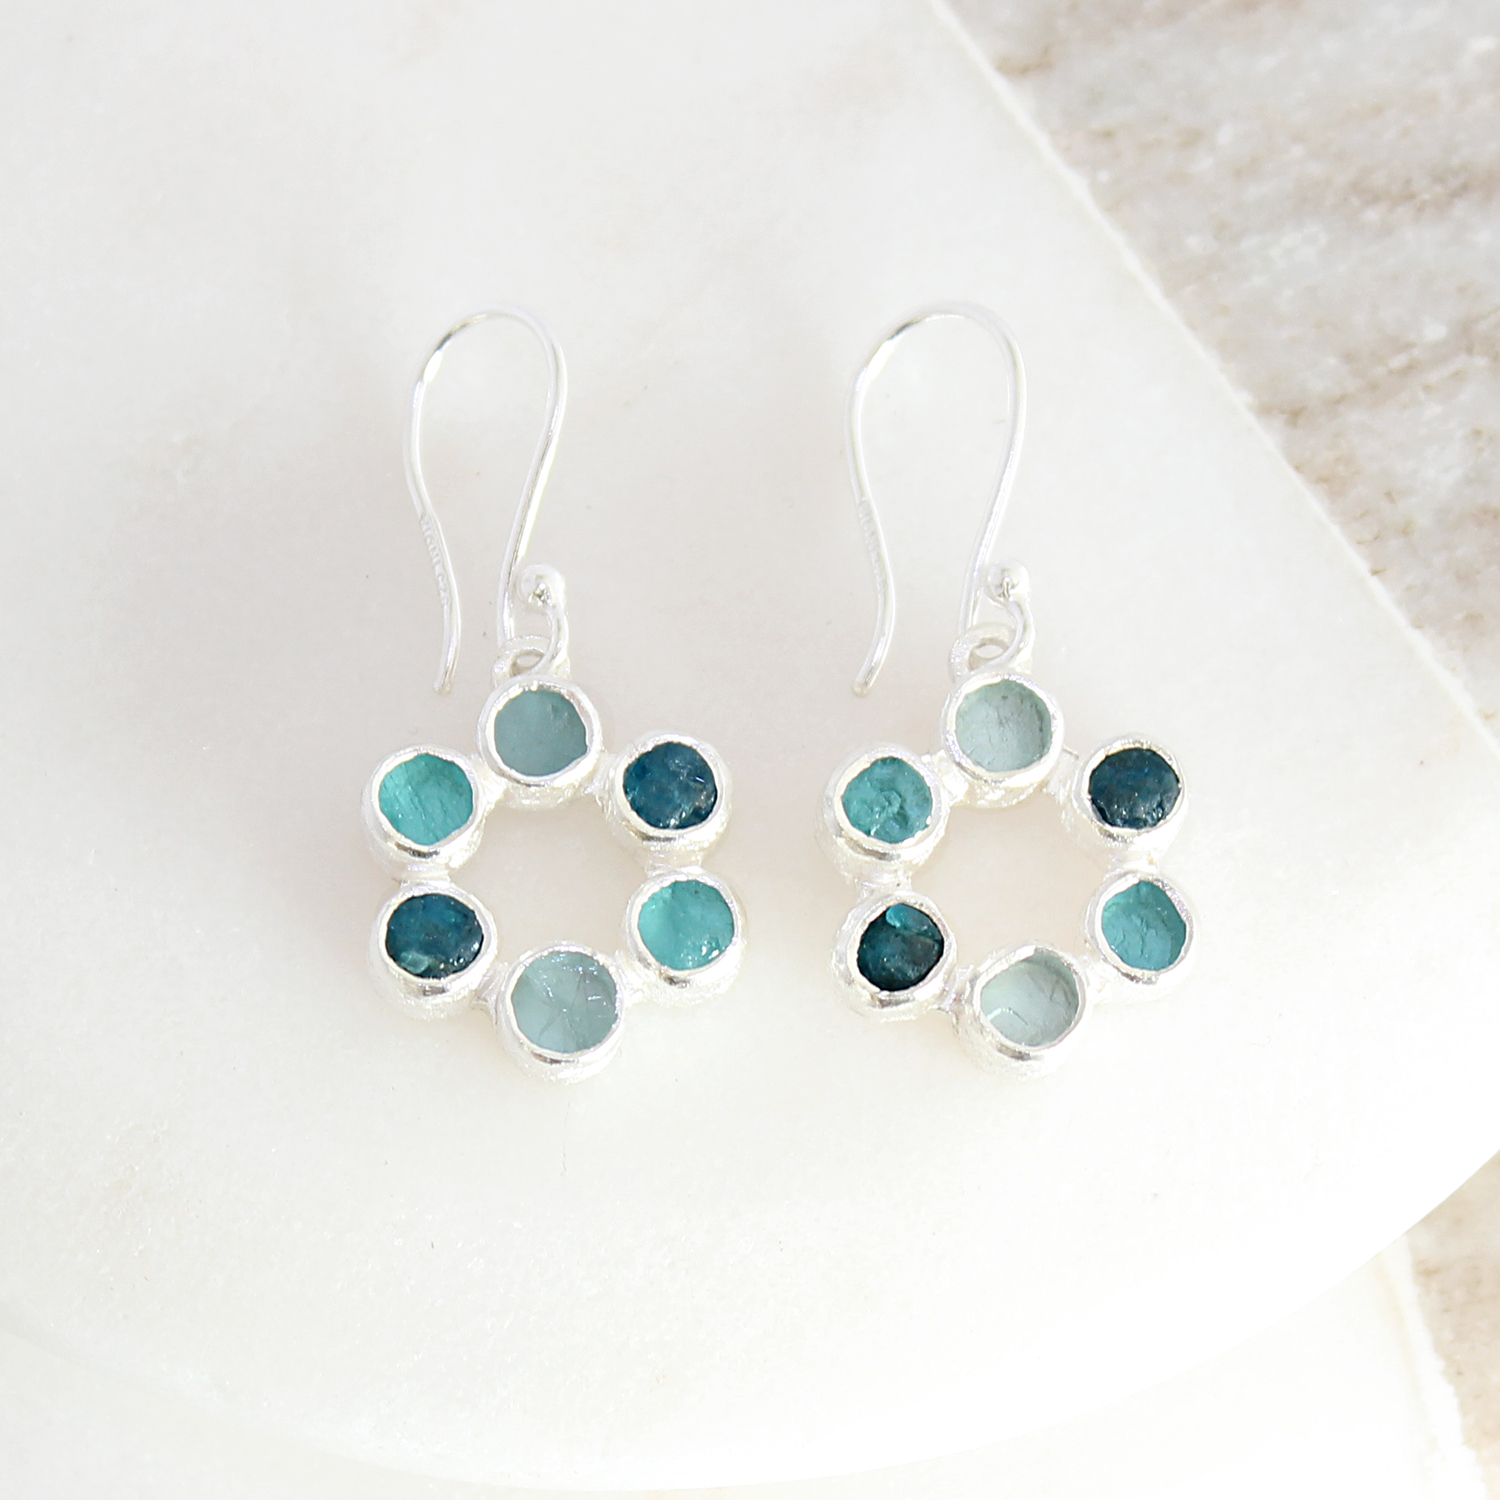 jewelry handmade leoben product gemstone rippleearringscover ripple earrings apatite